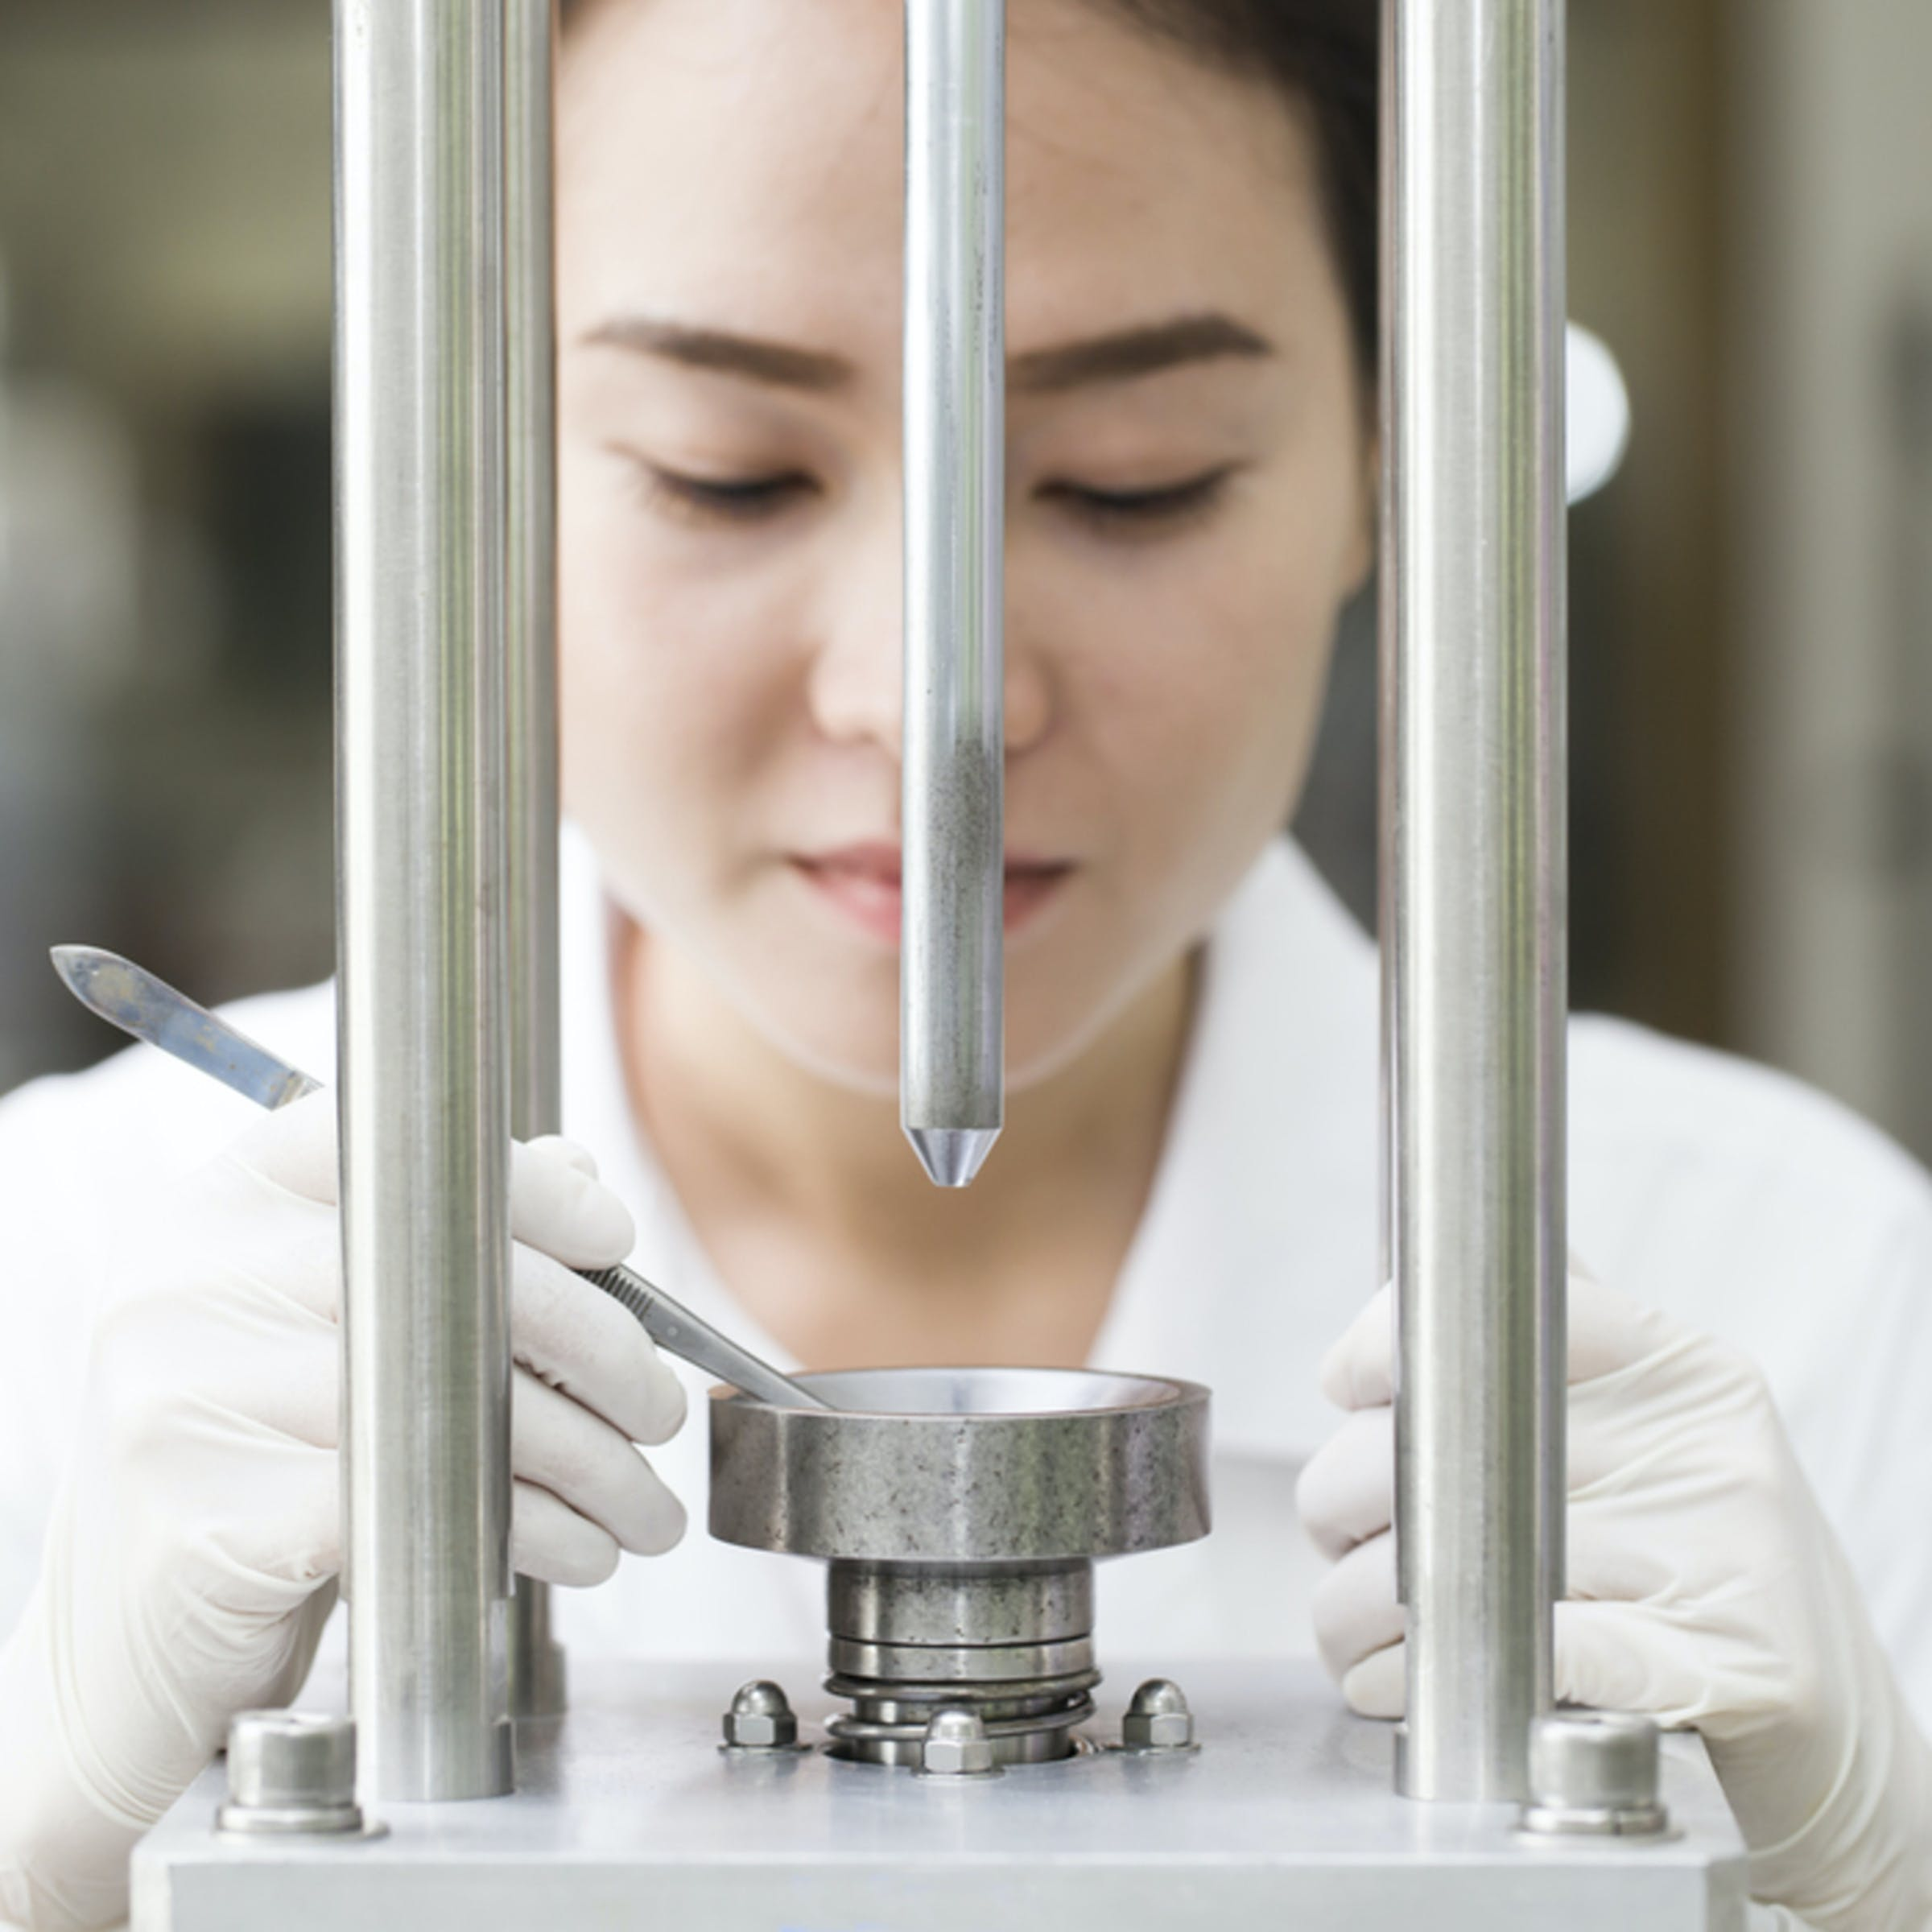 Materials Science: 10 Things Every Engineer Should Know